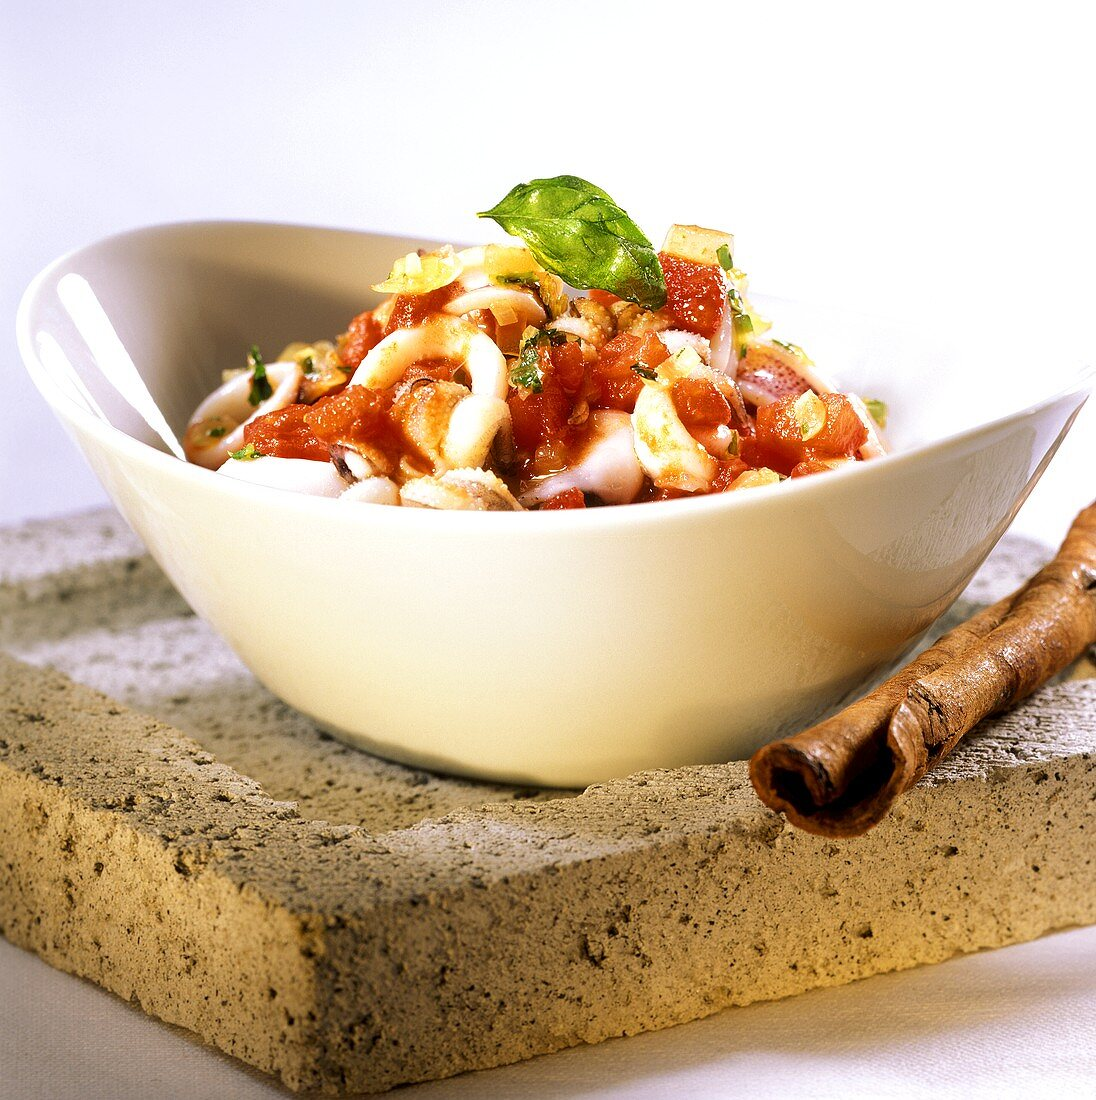 Seppie in umido (cuttlefish ragout with tomatoes & cinnamon)